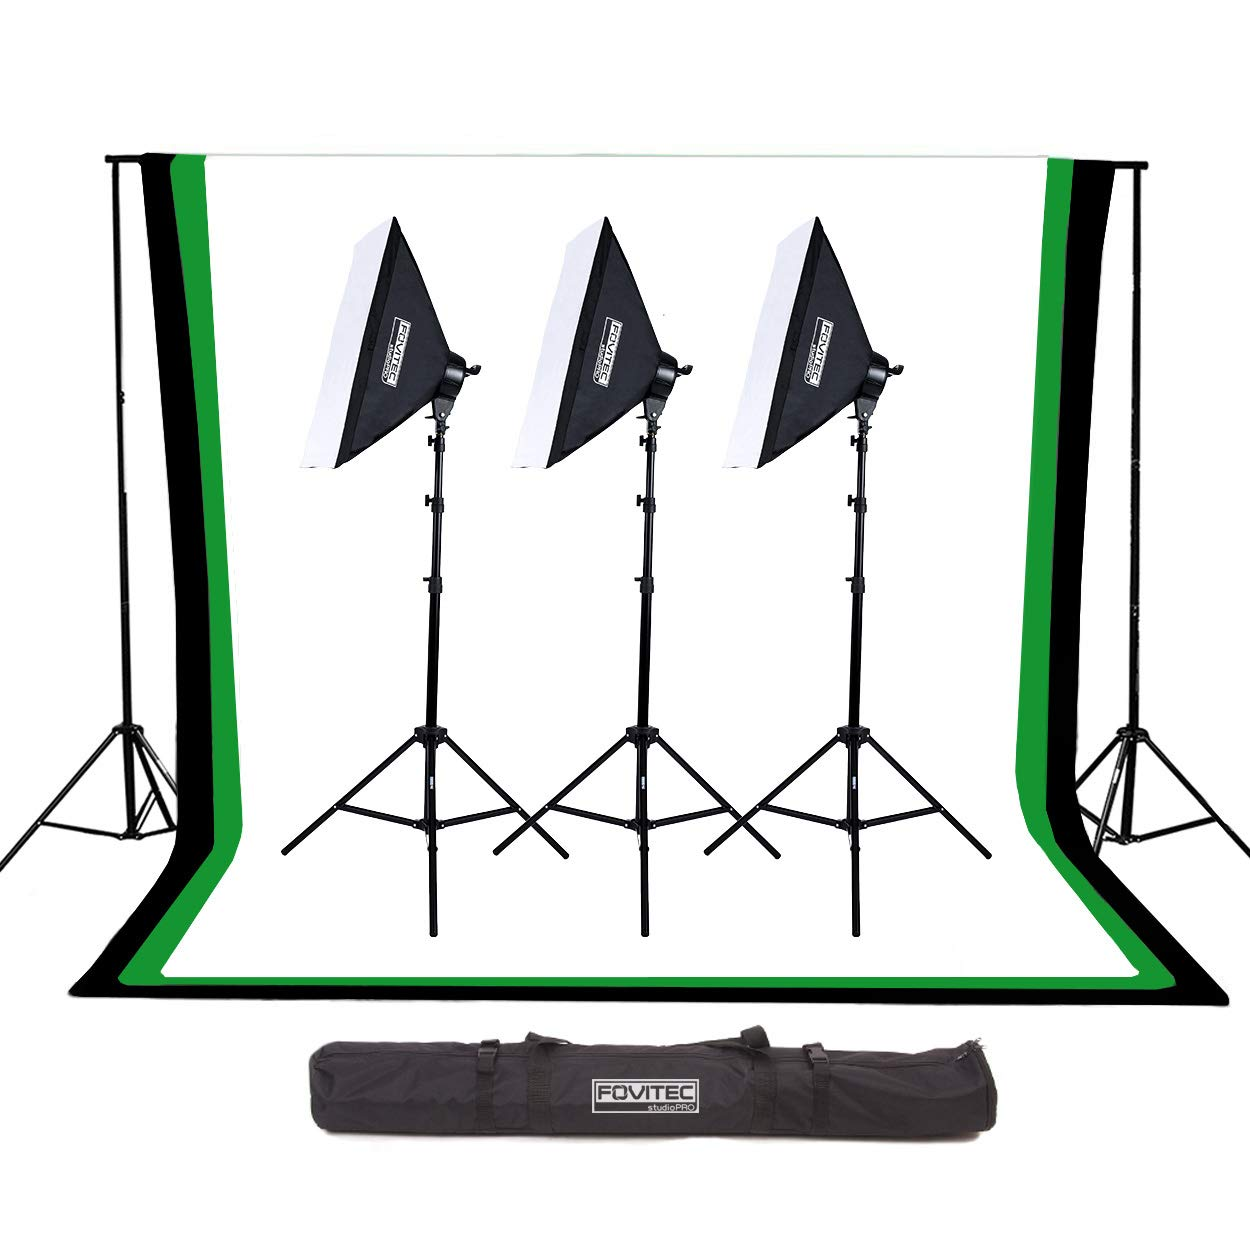 Fovitec - 6'x9' Muslin Backdrop Studio Kit with Backdrop Stands, Softboxes, & Carrying Case for Photo & Video by FOVITEC